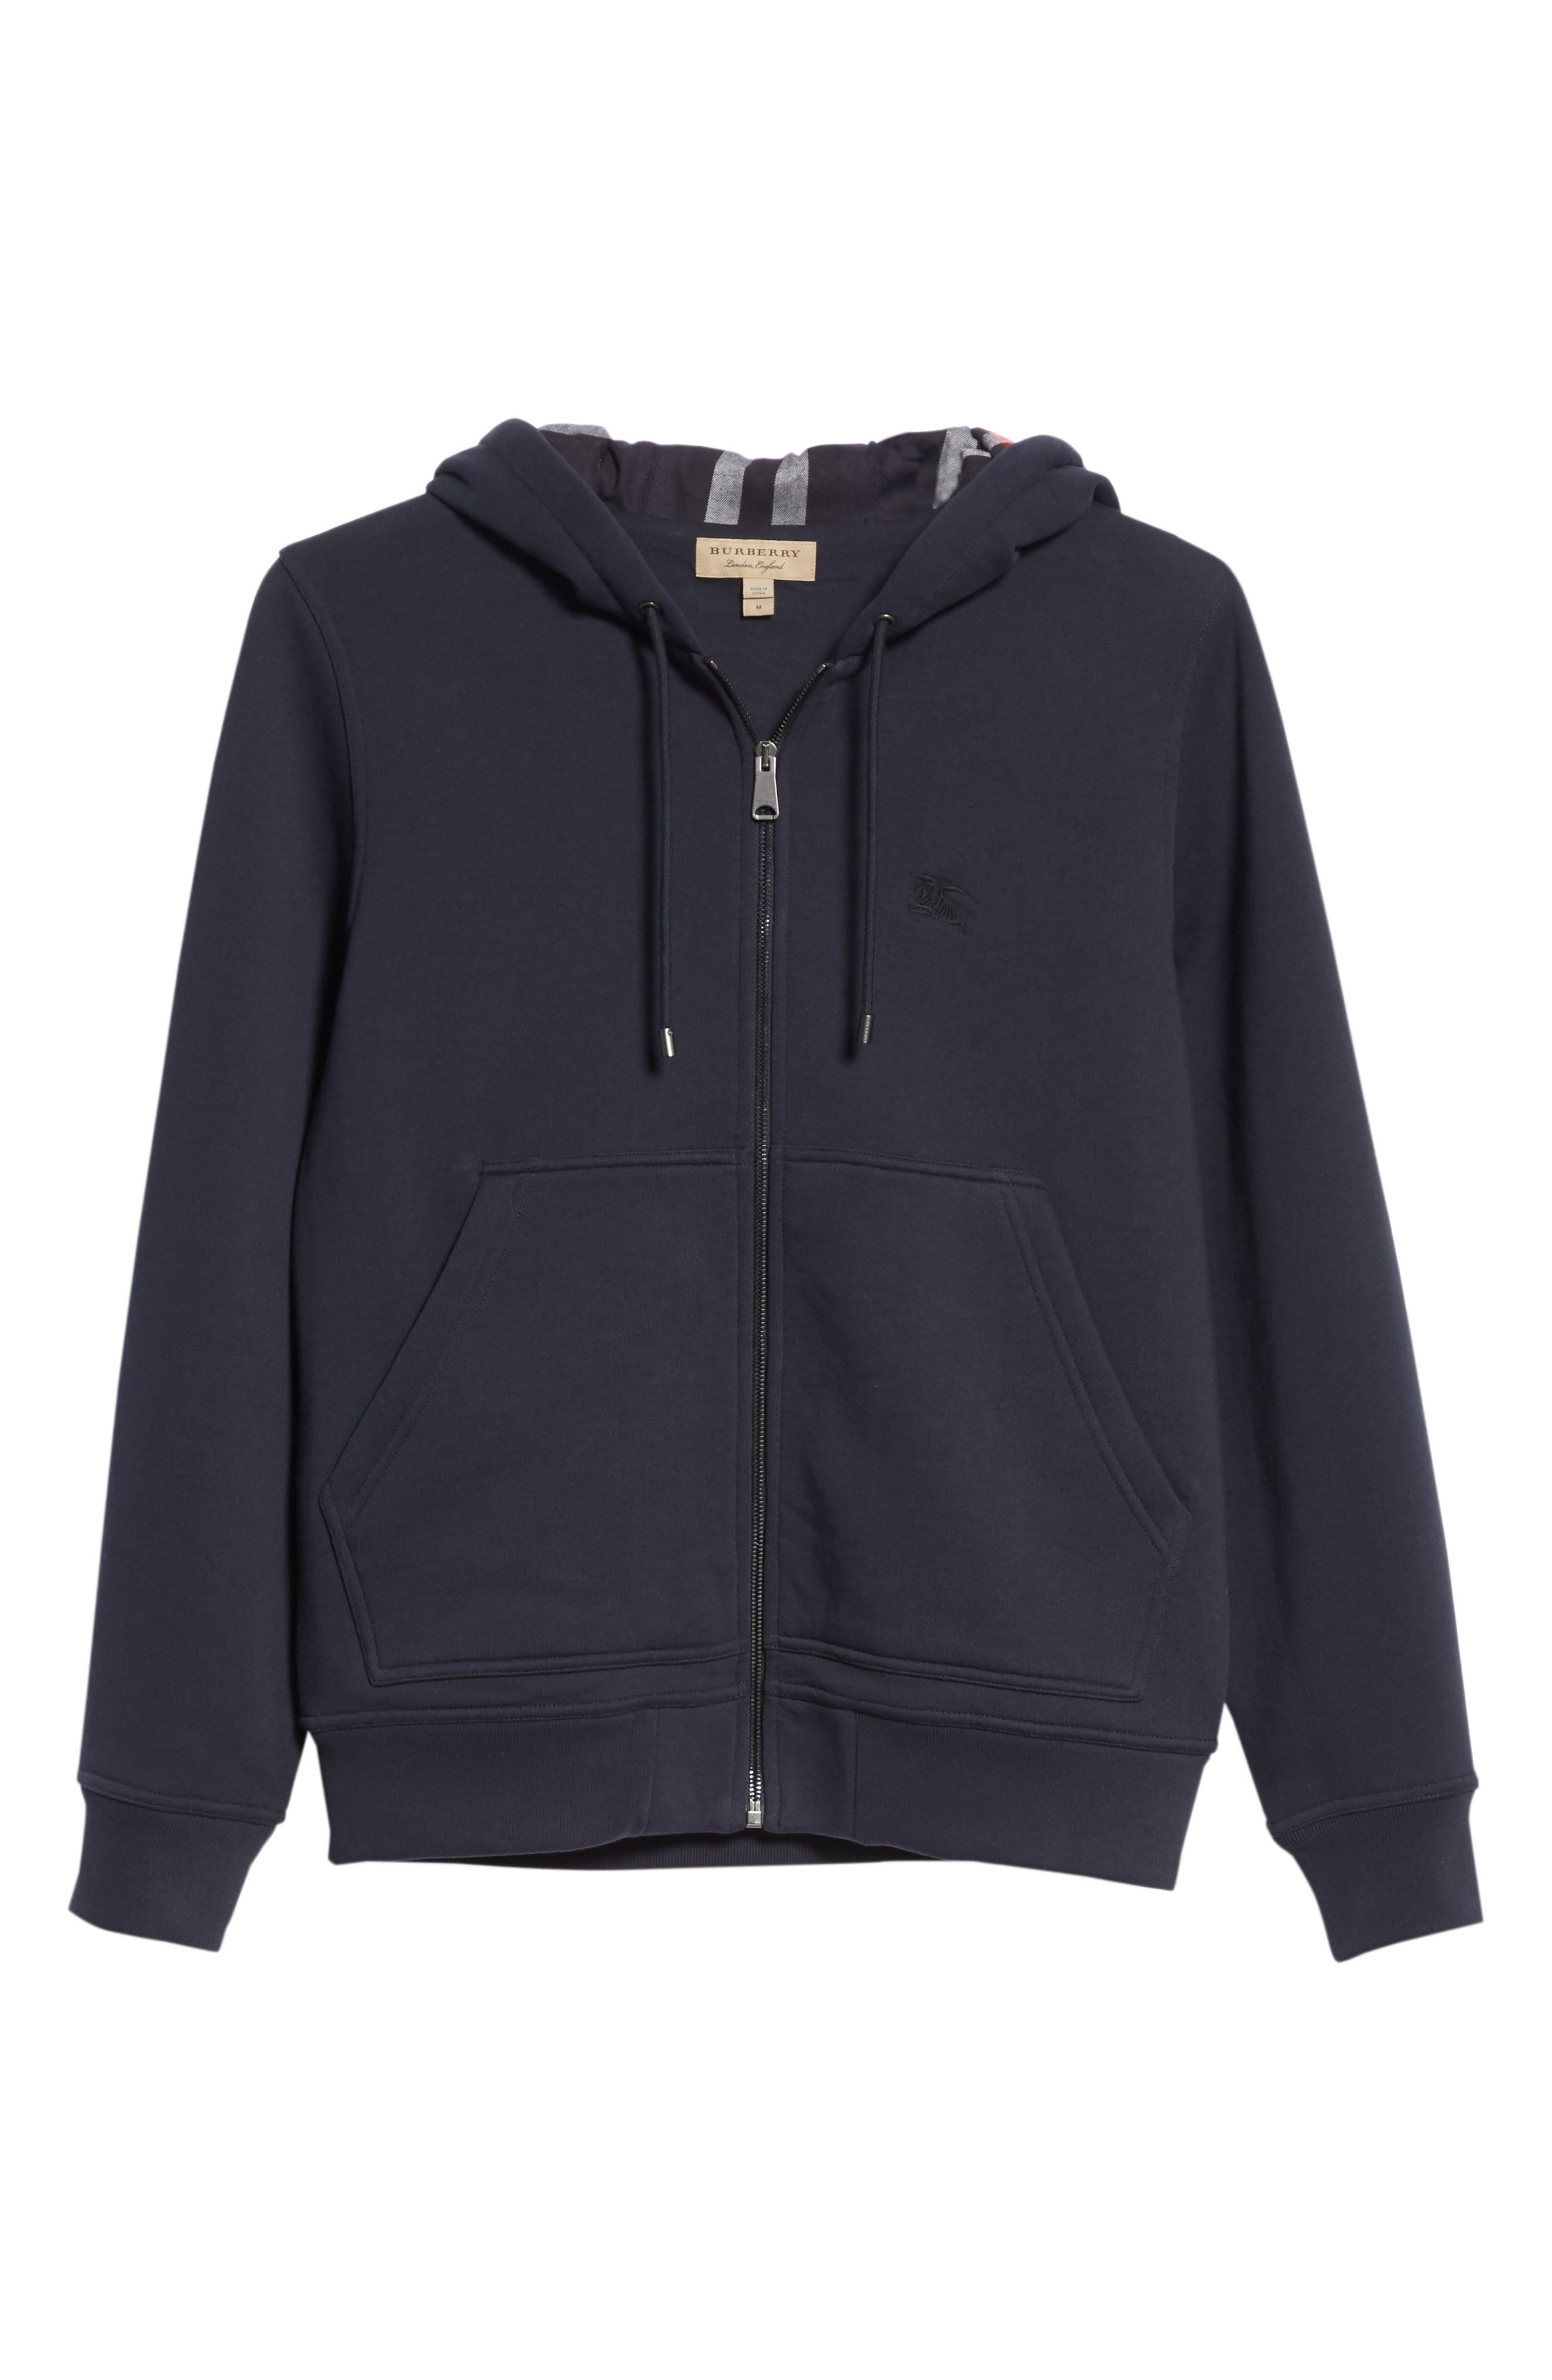 Zip Hoodie,                             Alternate thumbnail 6, color,                             NAVY